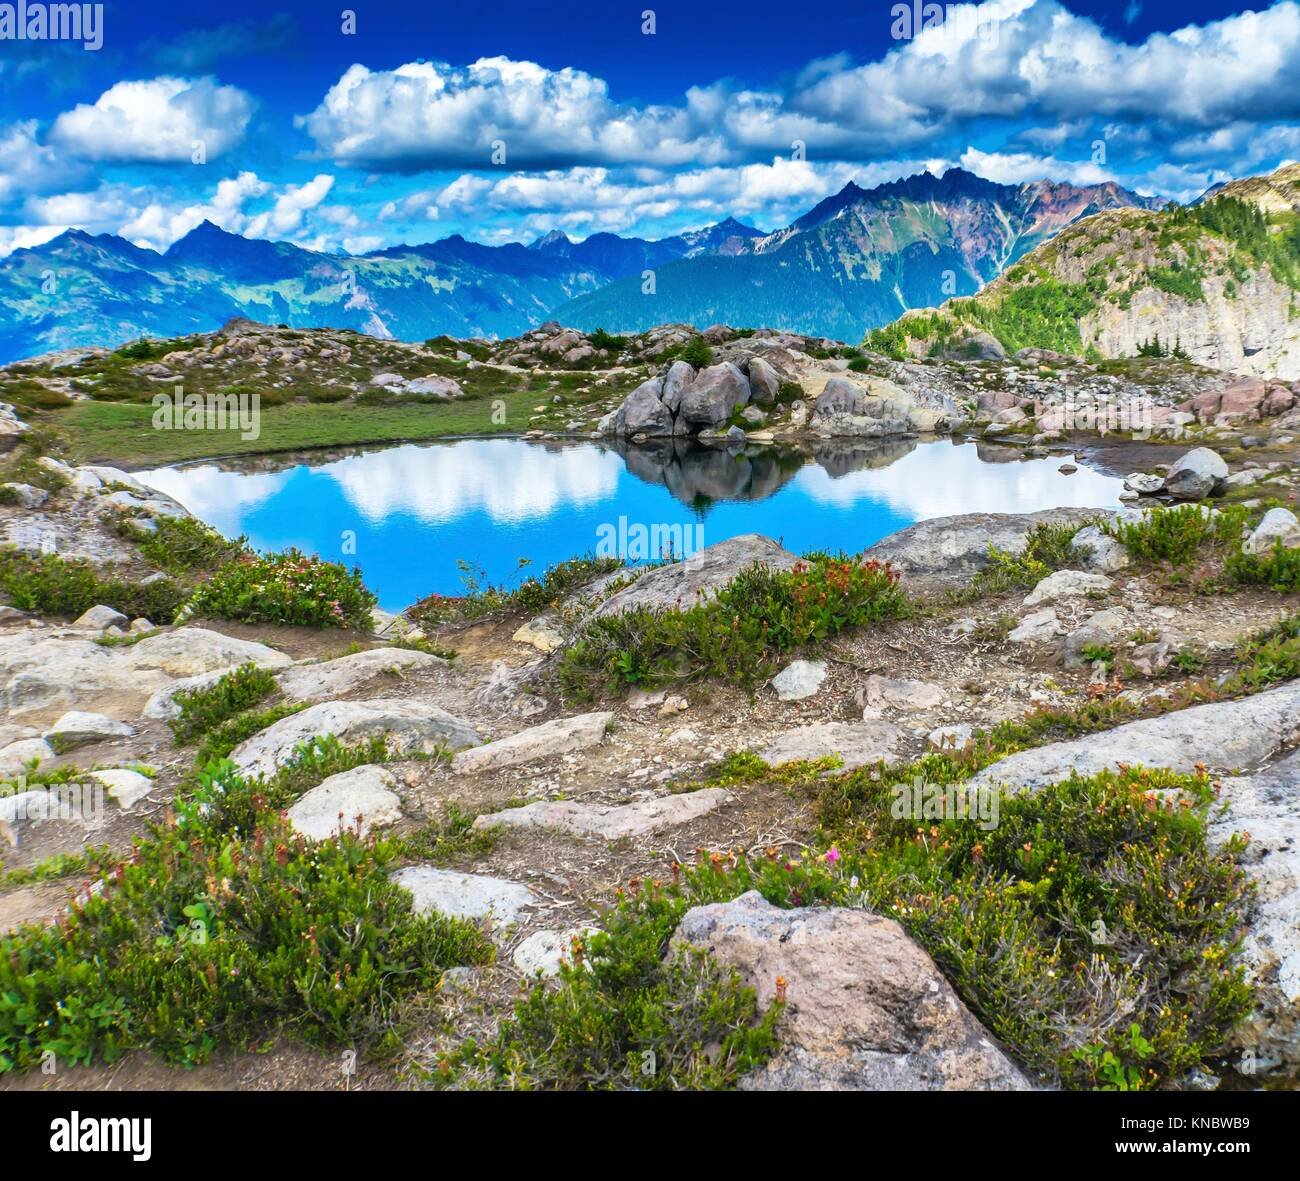 Pool Pond Reflection Summer Artist Point Mount Baker Highway. Pacific Northwest, Washington State, Snow Mountain - Stock Image